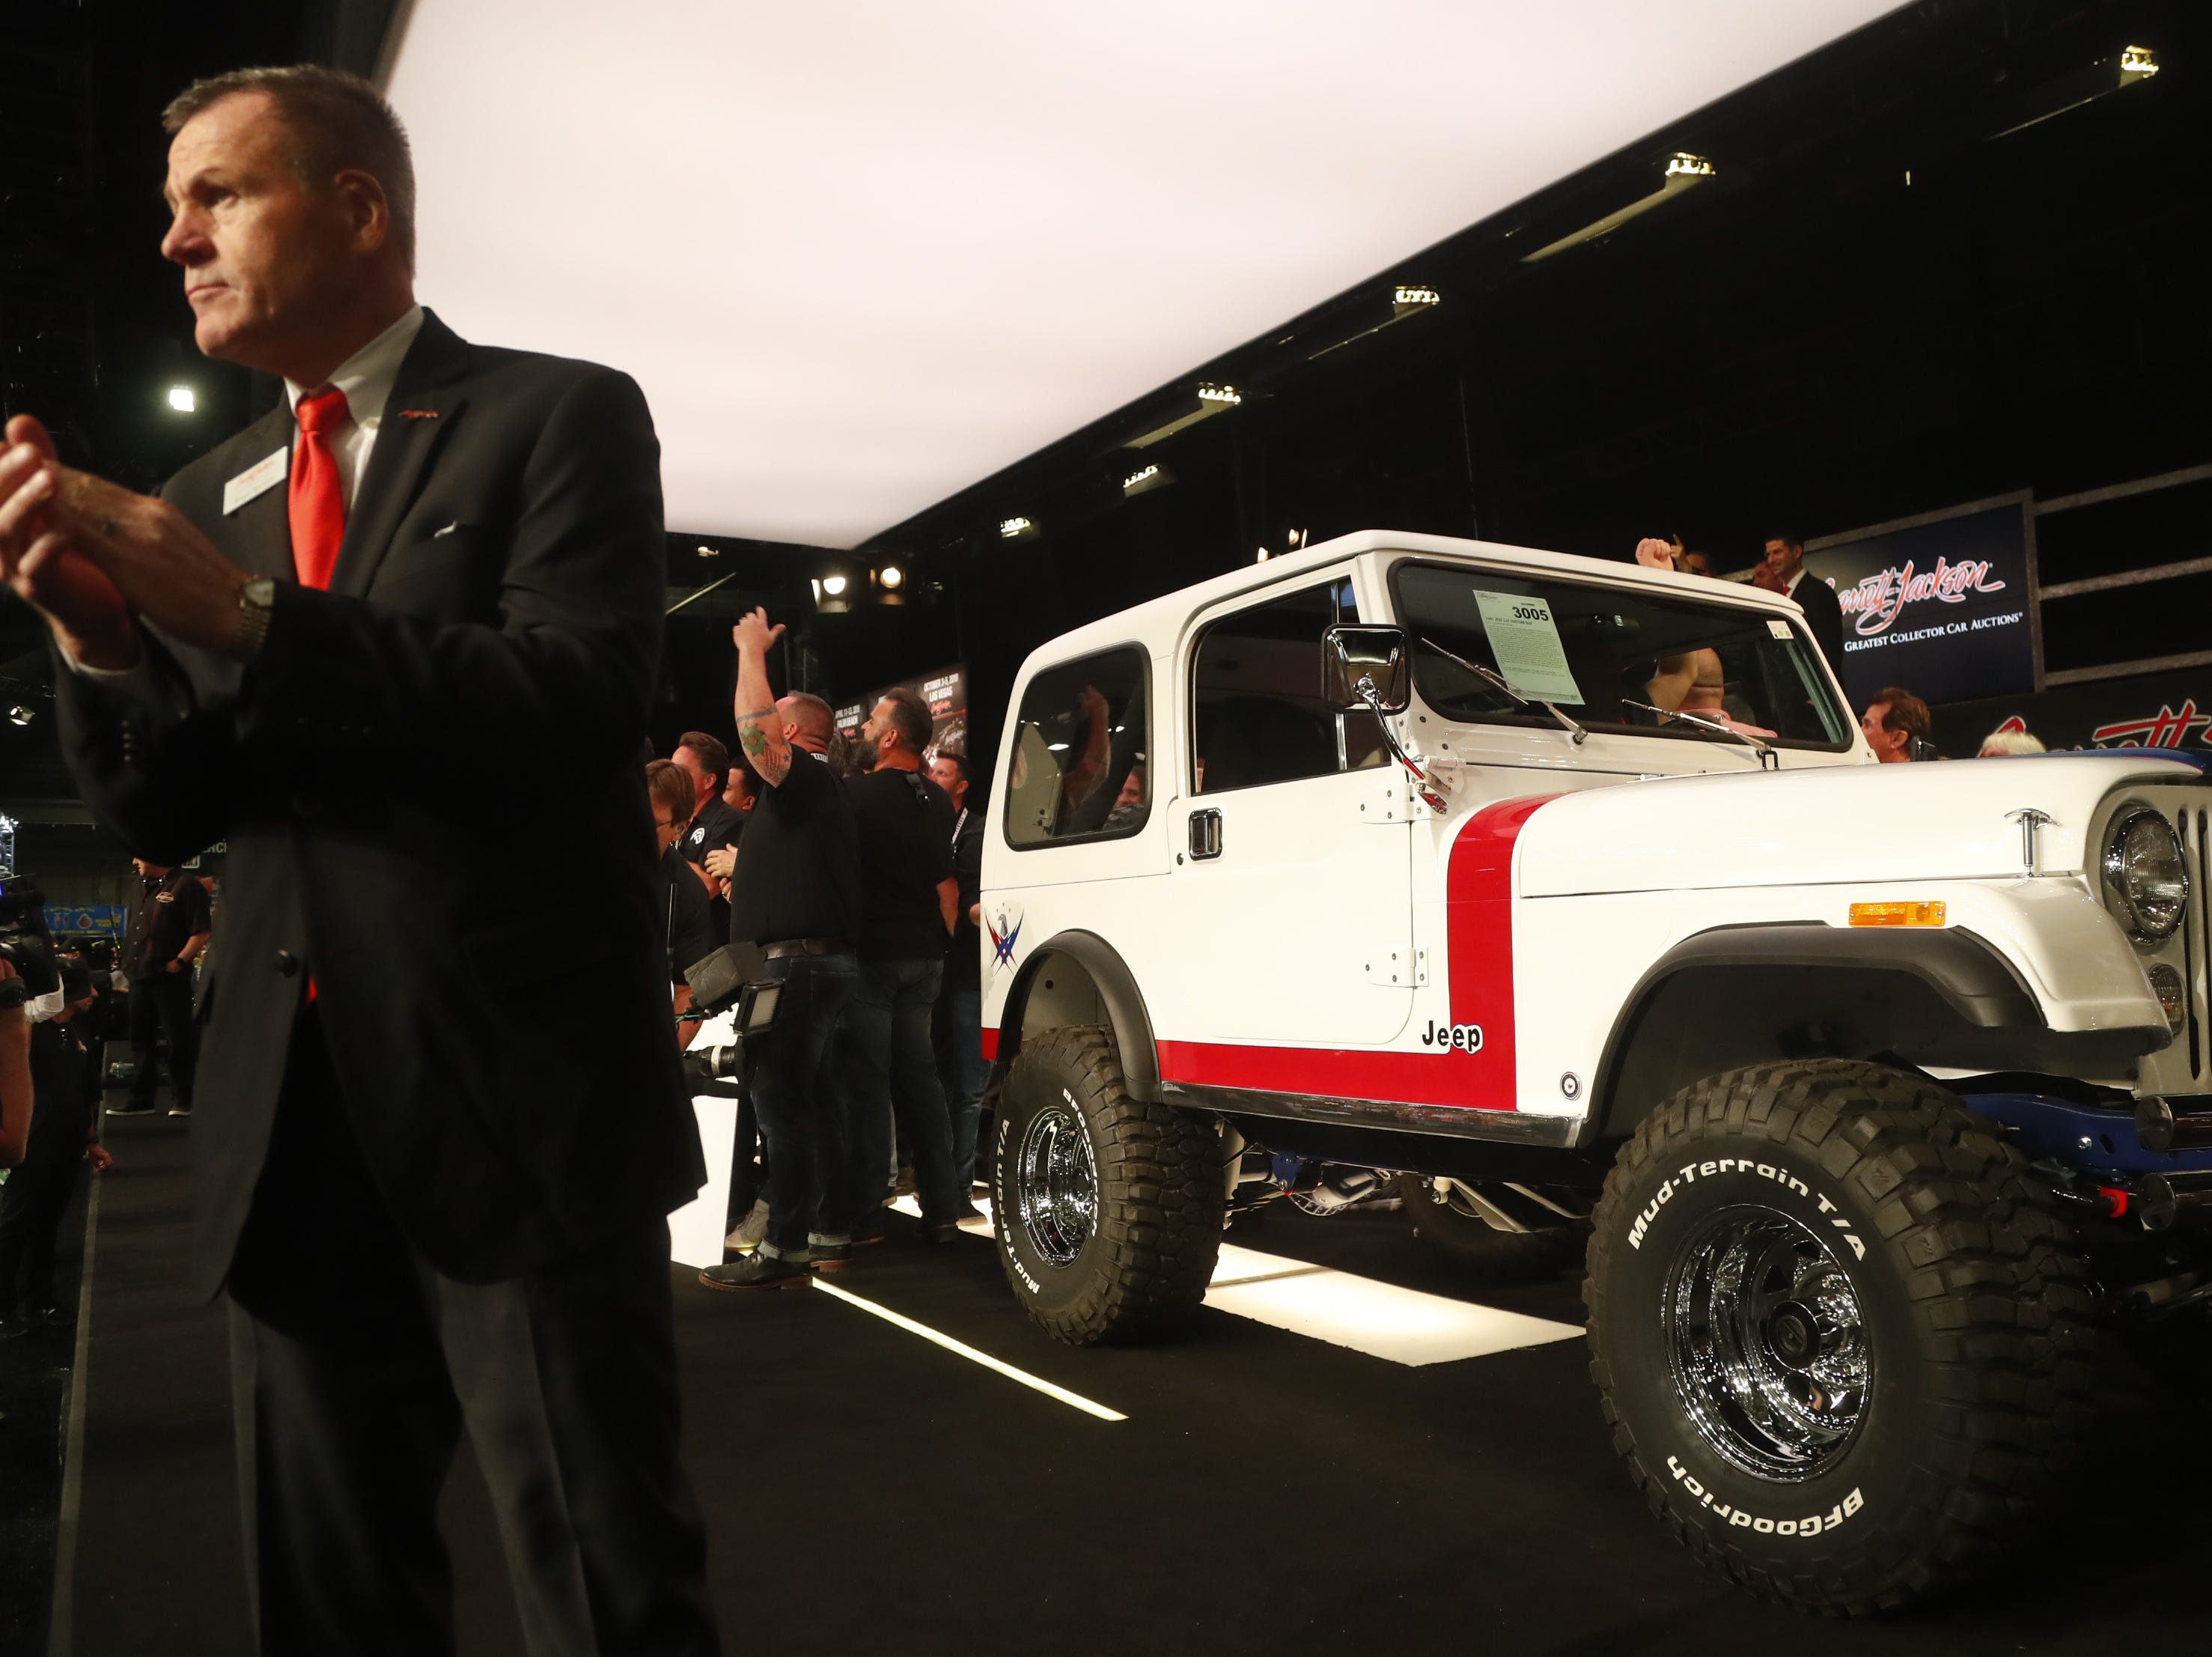 The custom Jeep is auctioned onstage to benefit the Gary Sinise Foundation at the Barrett-Jackson collector-car auction at WestWorld in Scottsdale on Jan. 18, 2019.